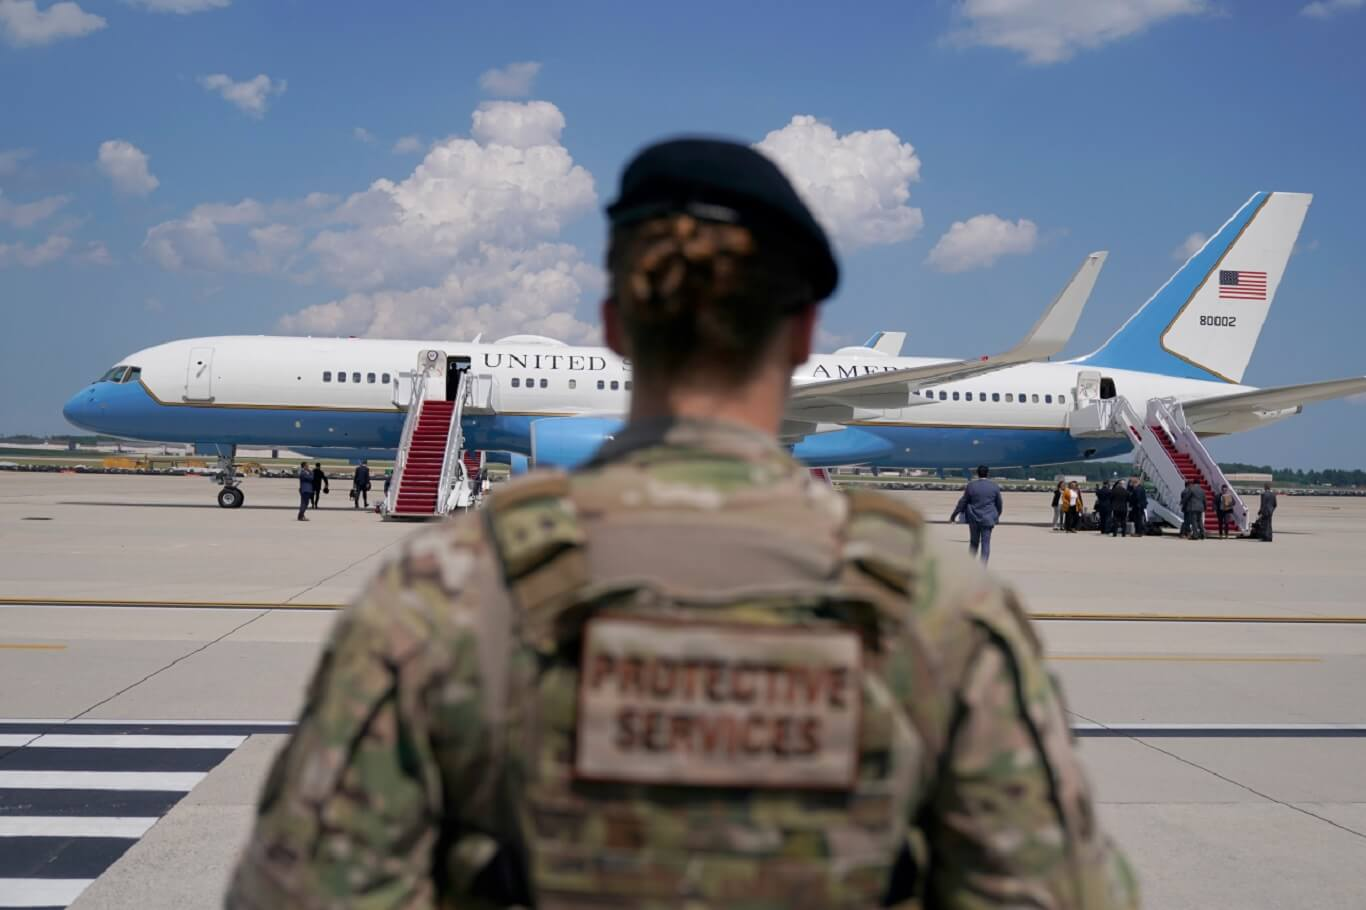 U.S Air Force faces sexual harassment